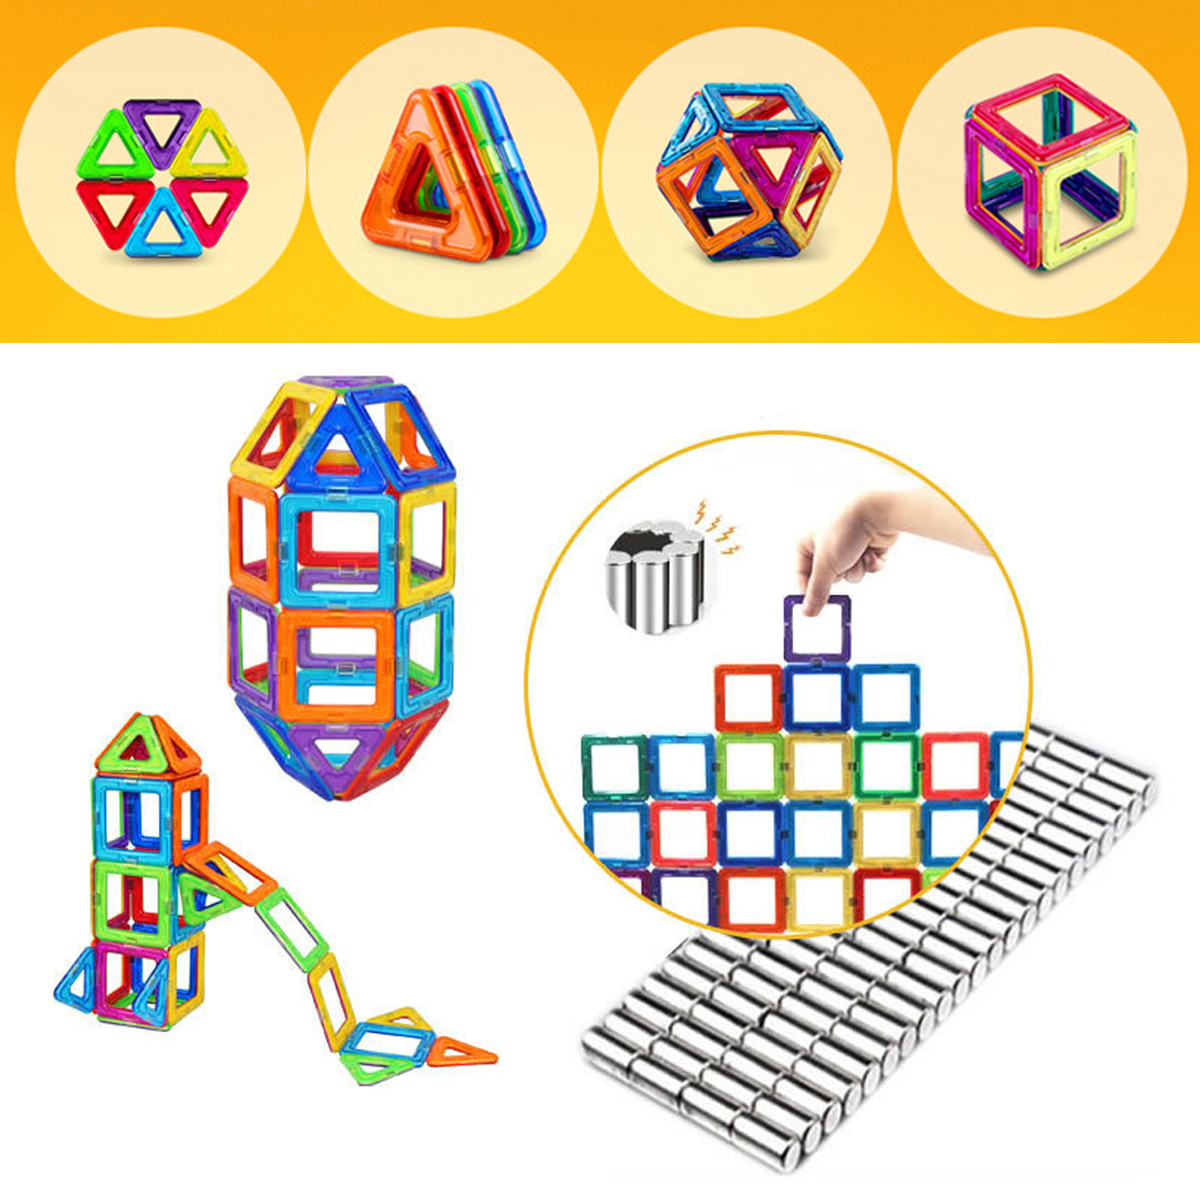 113 Pieces Kids Magnetic Toys Magnet Tiles Kits Blocks Building Toys For Boys Girls